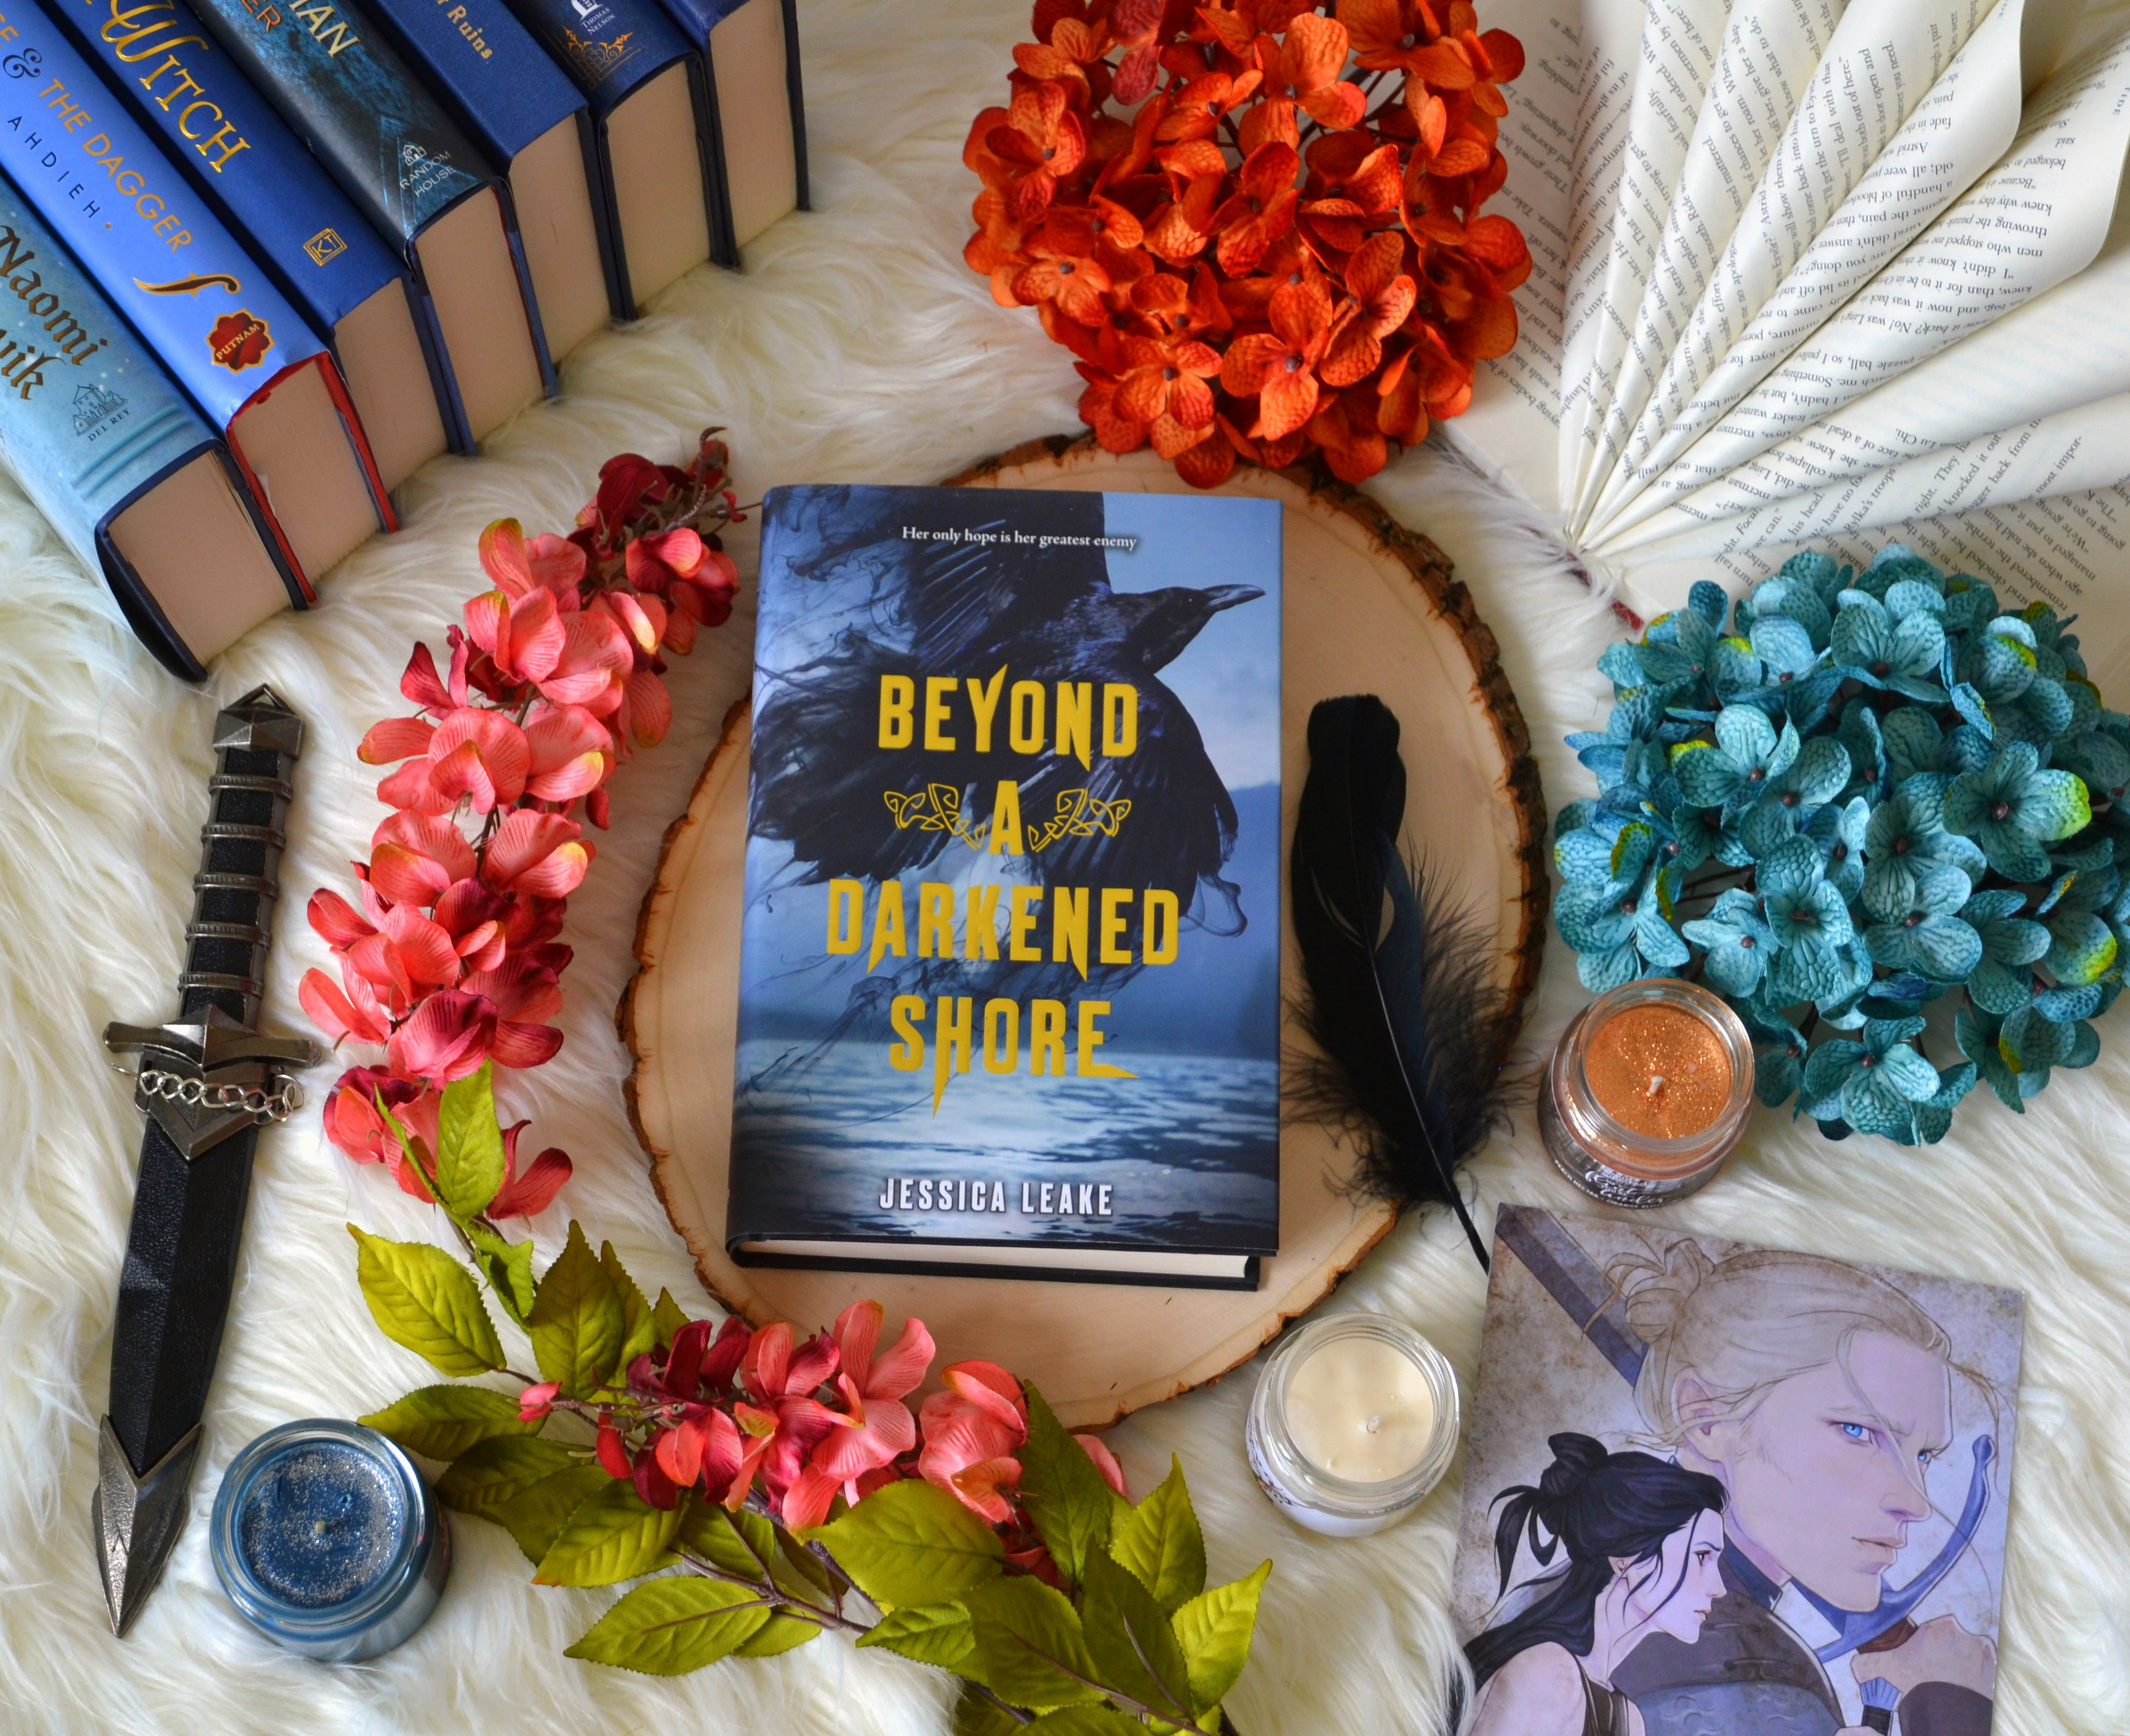 Beyond a Darkened Shore by Jessica Leake | Review